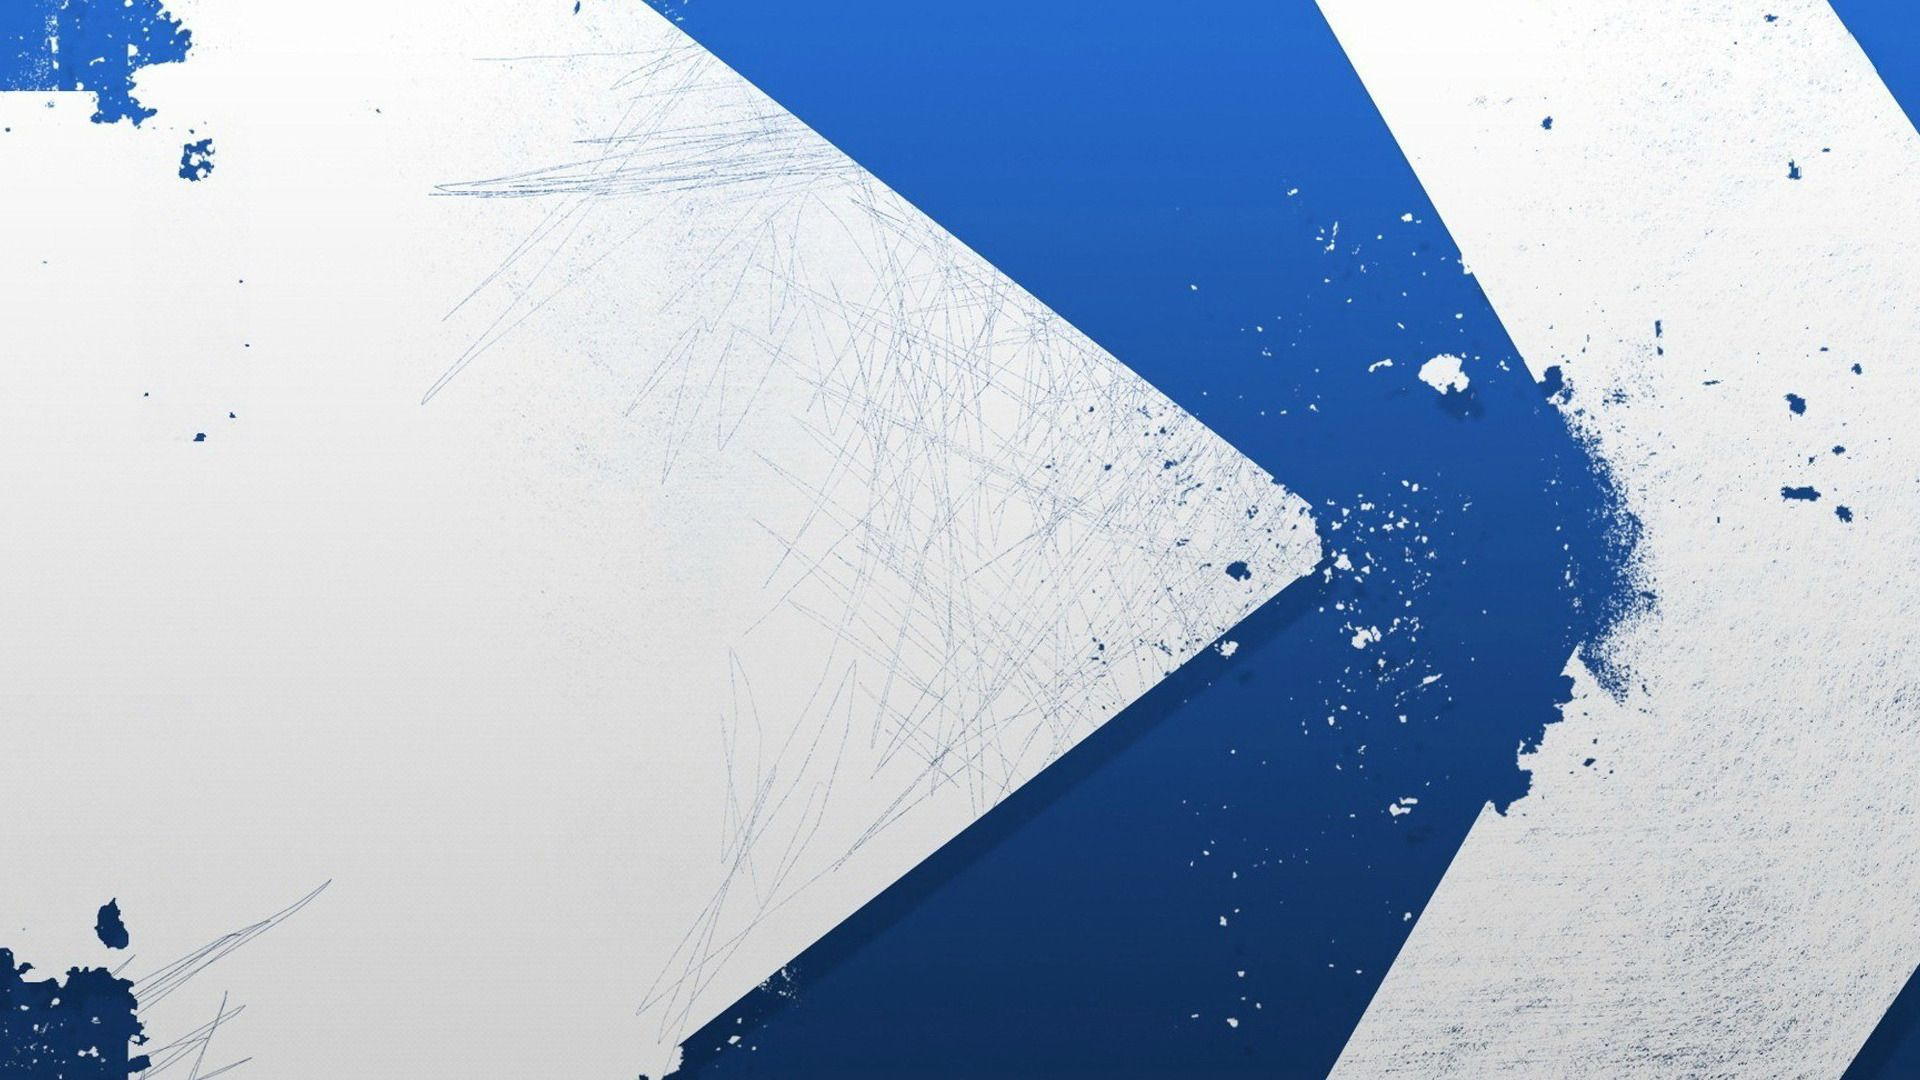 1920x1080 Blue and White Grunge Computer Wallpapers - WallpaperAsk